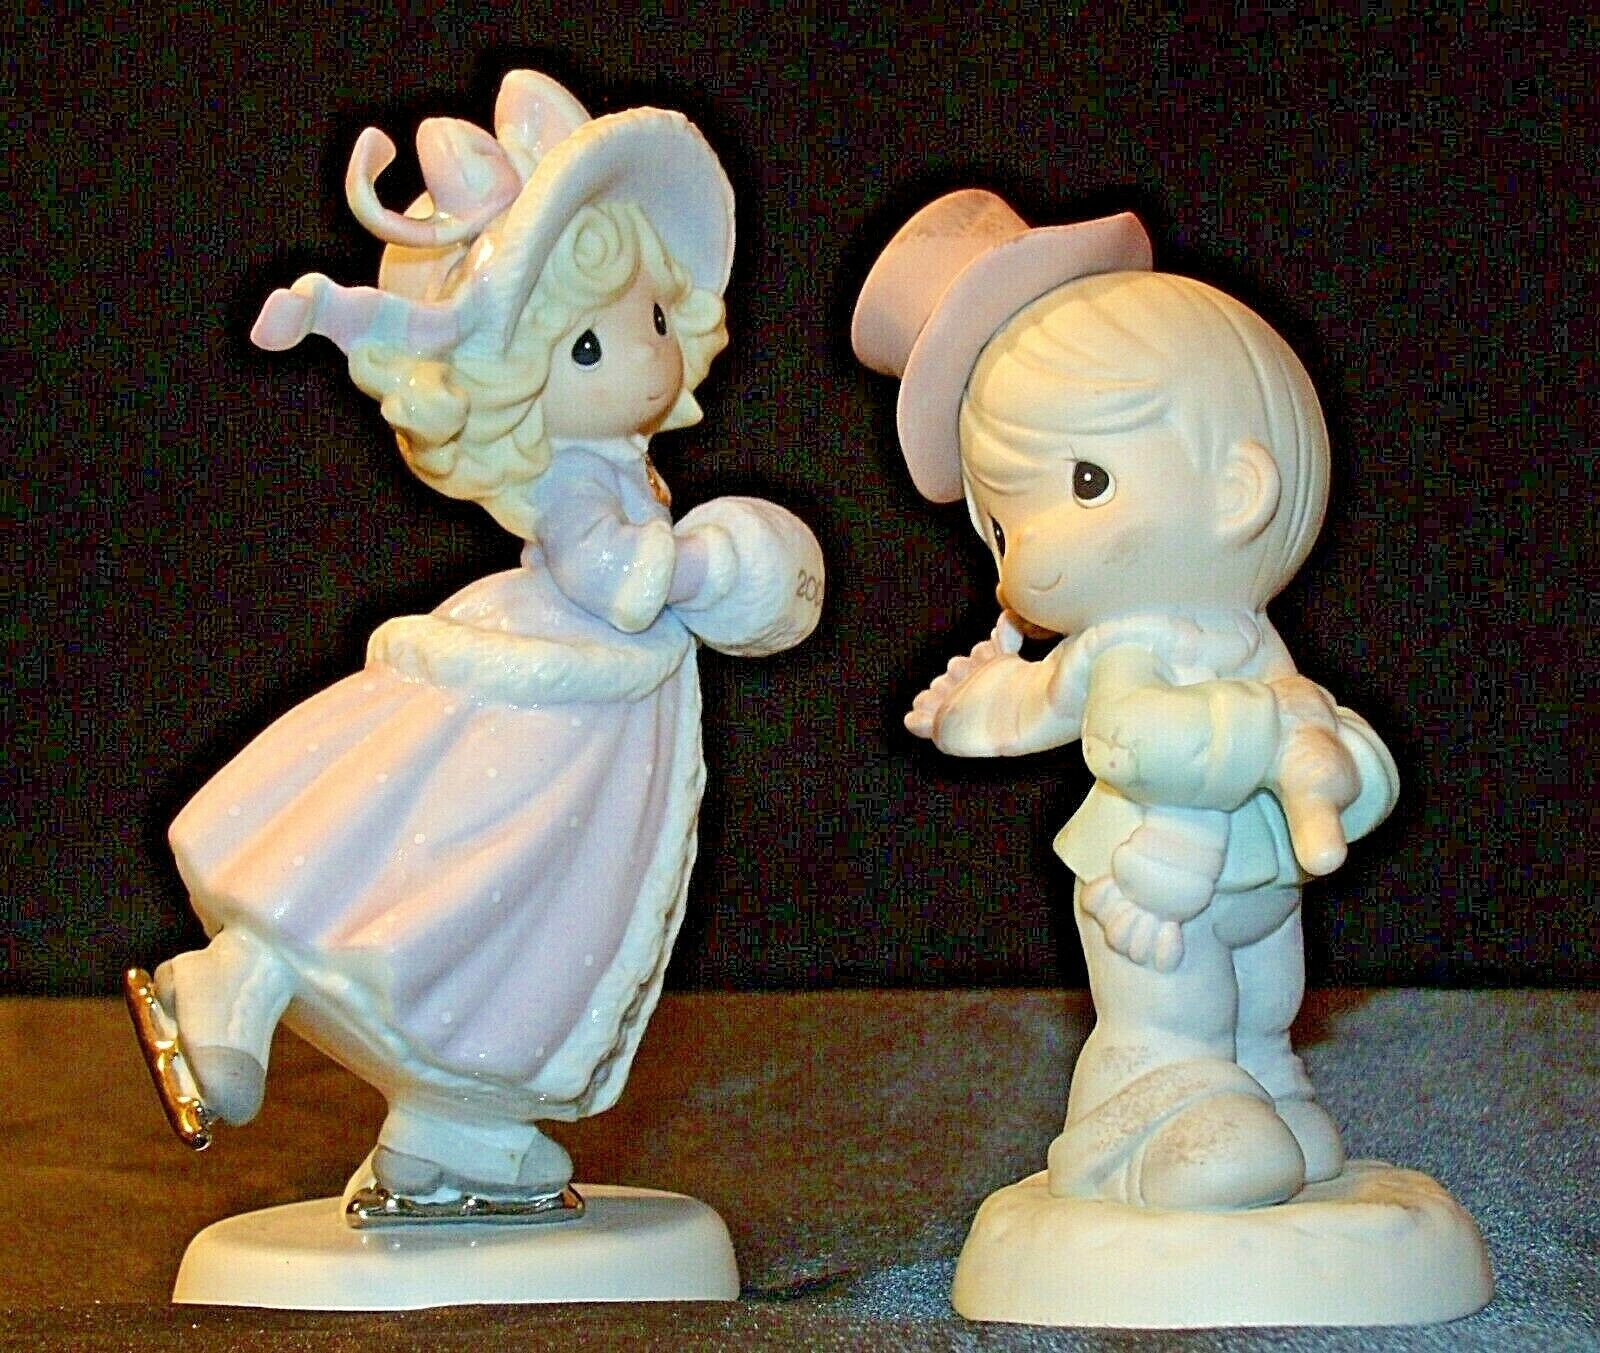 1995/2002 Precious Figurines Moments AA-191842 Vintage Collectible